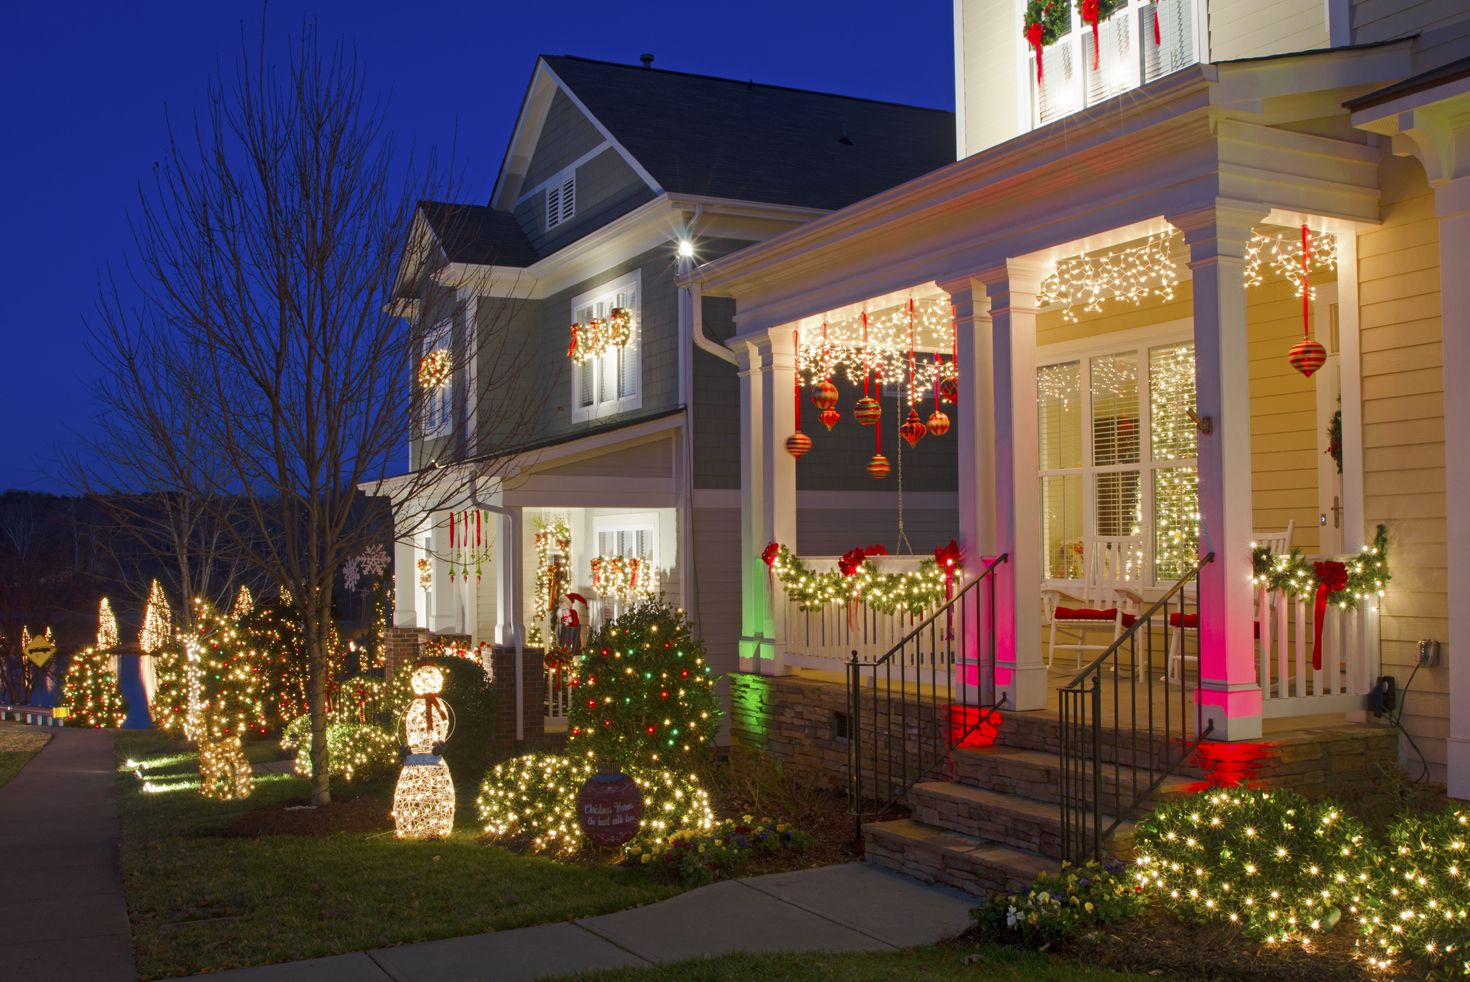 best christmas towns in usa mcadenvilleChristmas Town, USA